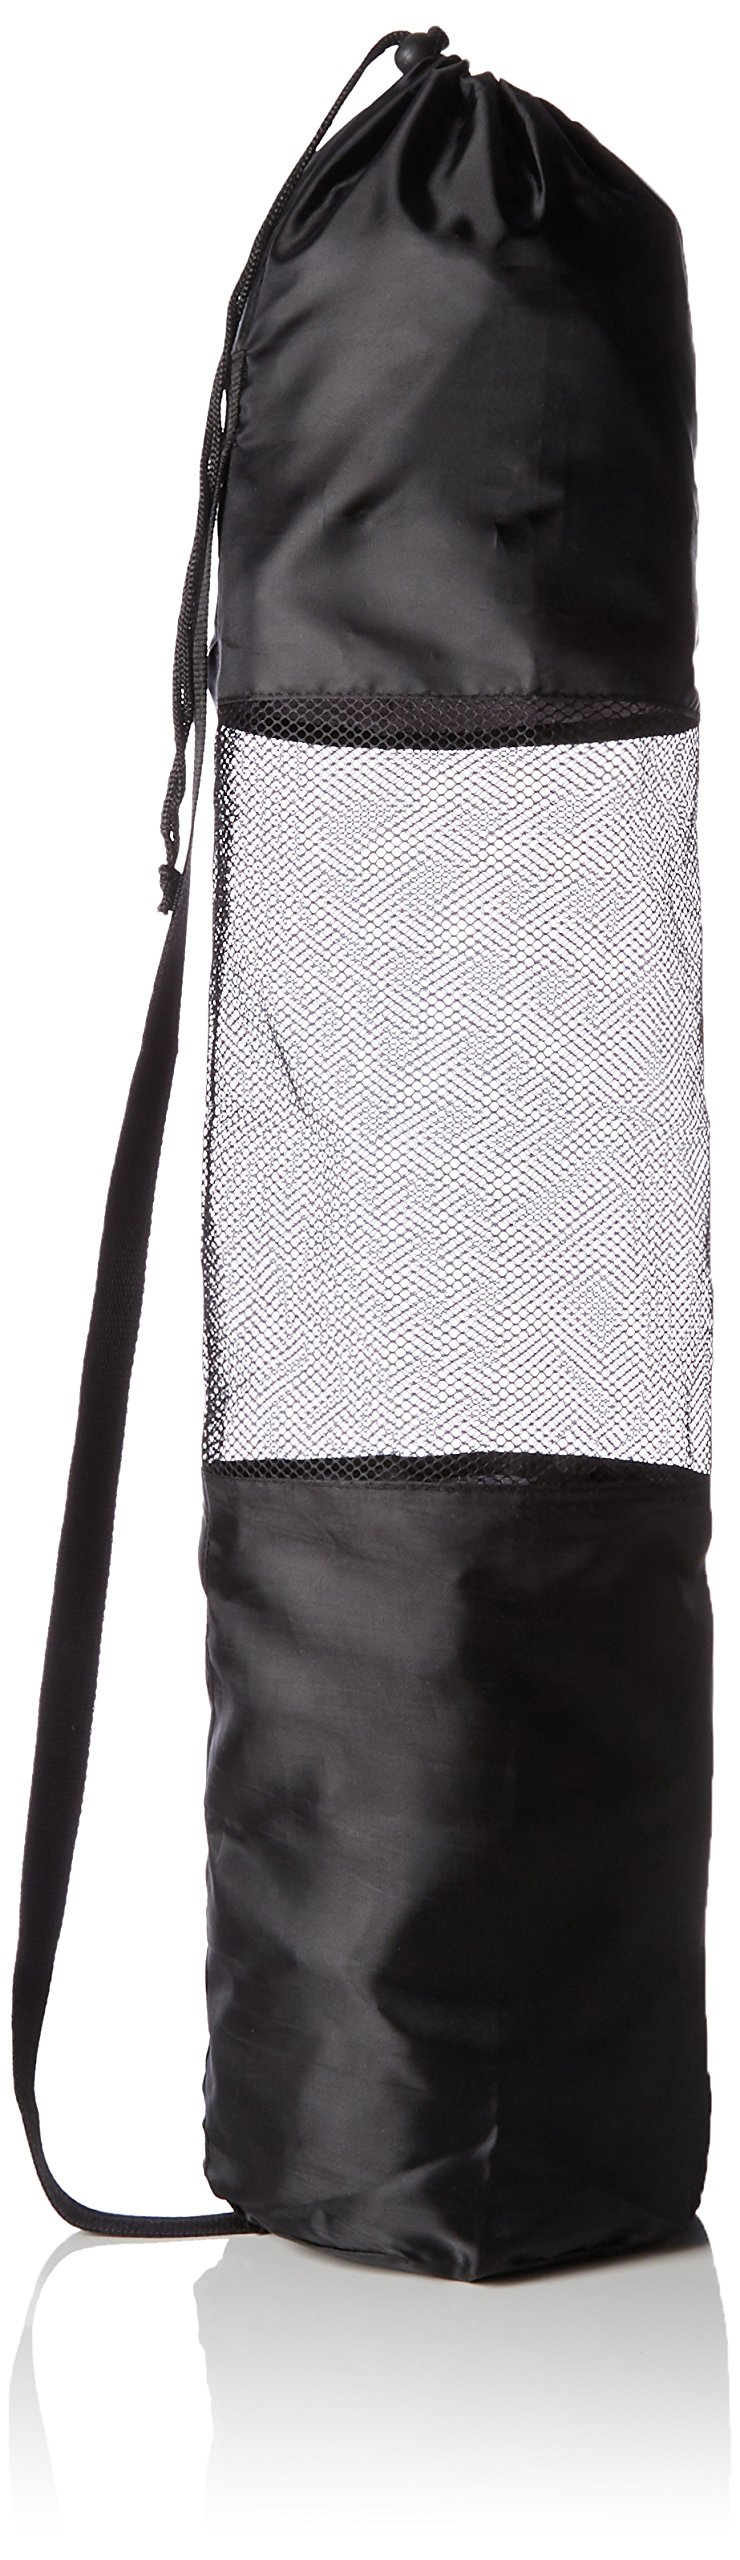 Black Mountain Yoga Mat Bag with Carrying Strap Products by Black Mountain (Image #3)